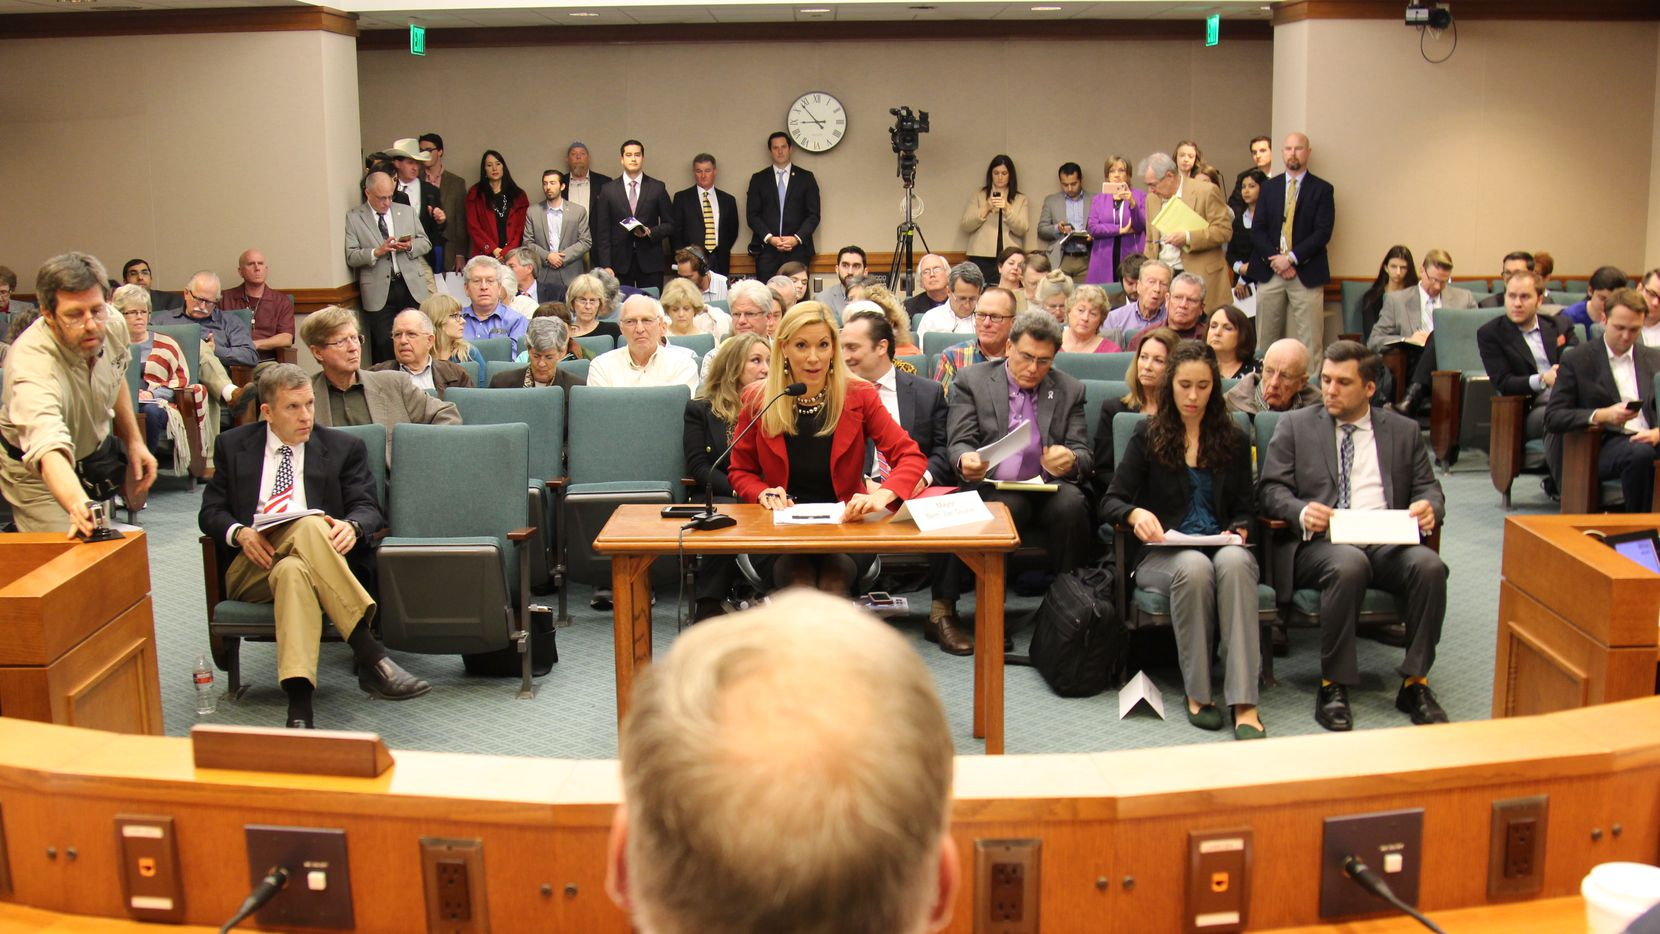 Irving Mayor Beth Van Duyne spoke at the Texas Homeland Security Forum at the Capitol on Thursday.